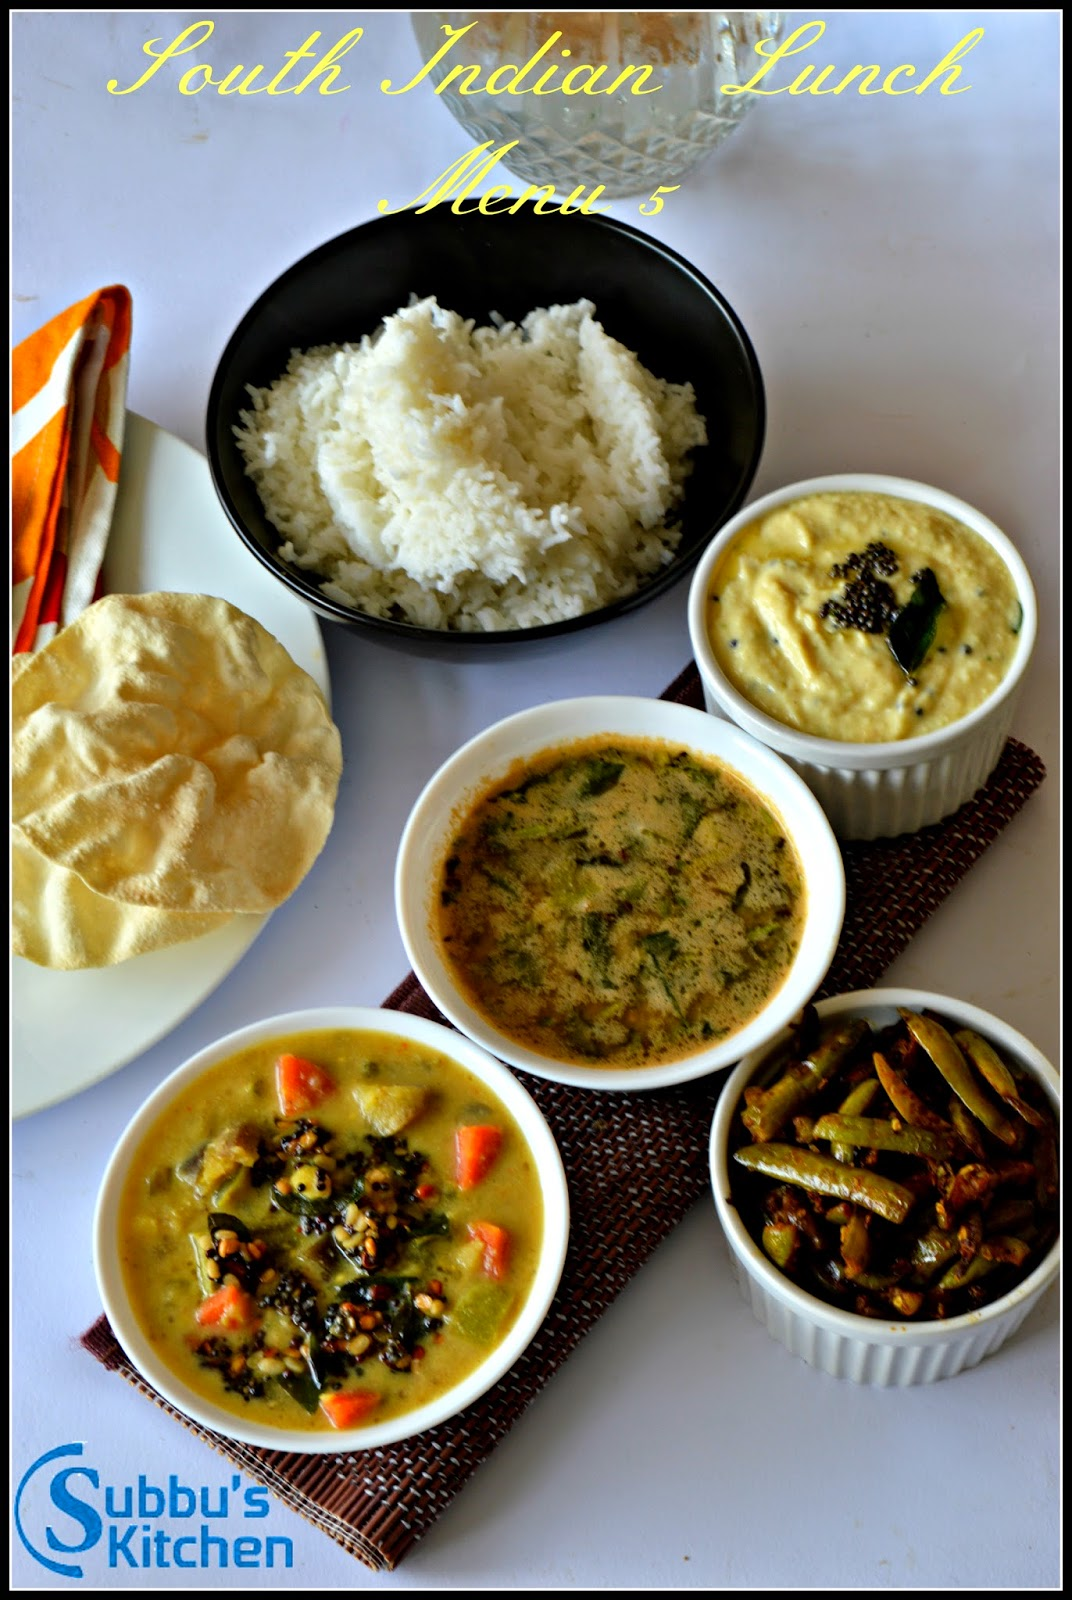 South Indian Lunch Menu 5 - Poricha Kuzhambu, Senai Thayir Pachadi, Kovakaai Fry, Mysore Rasam